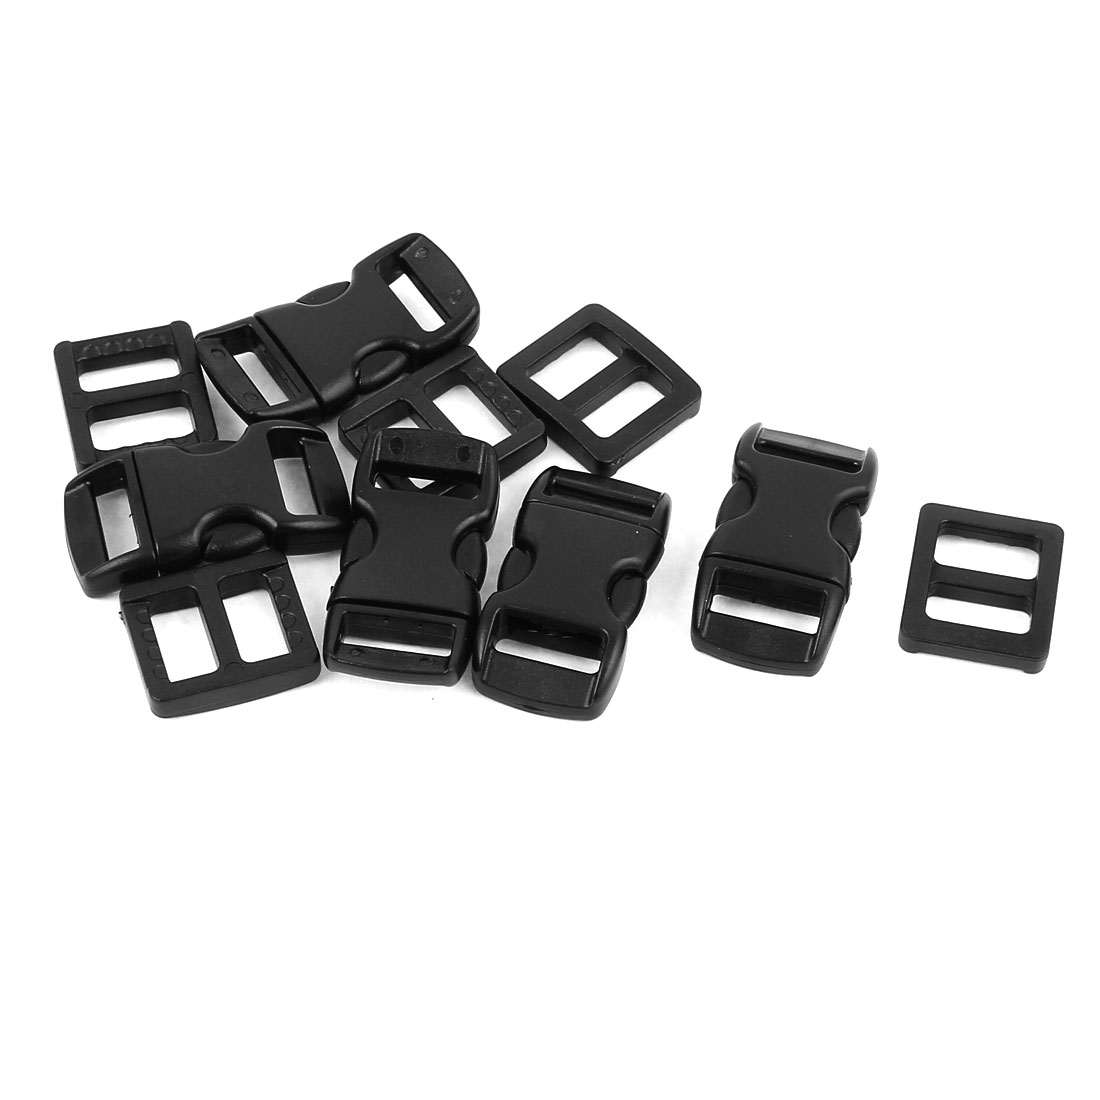 5pcs Black Plastic Packbag Side Quick Release Clasp Buckles for 10-11mm Webbing Strap